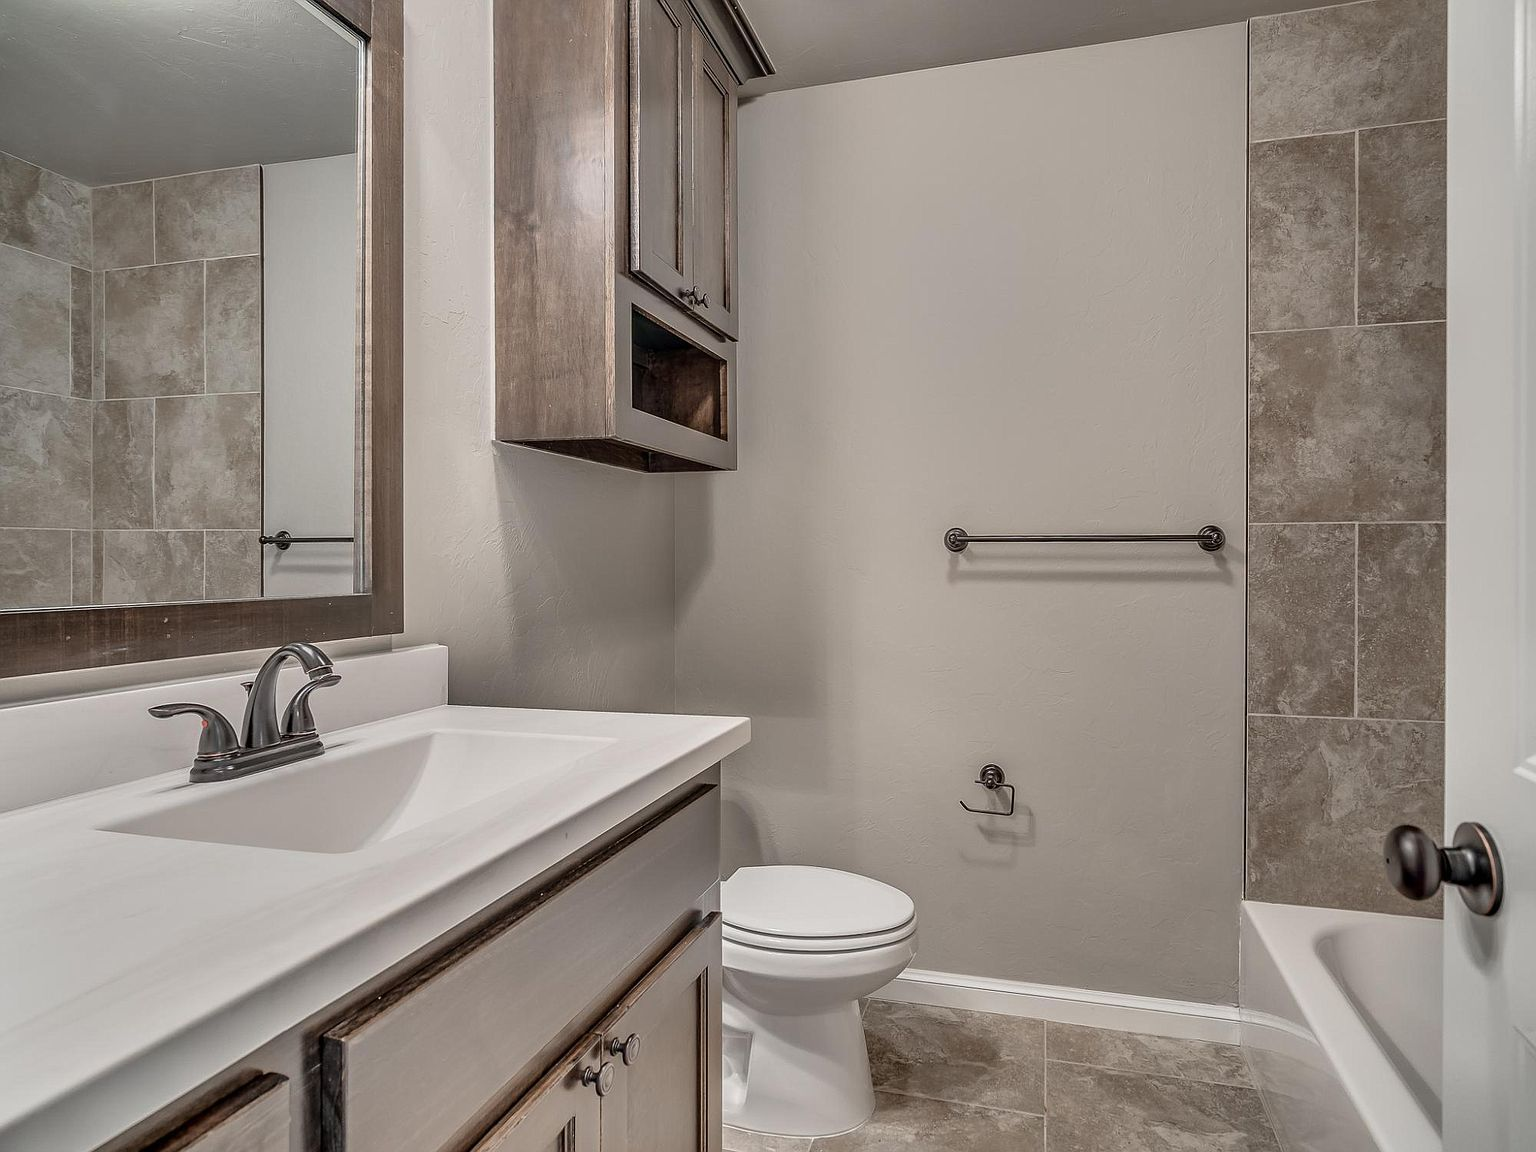 Talk Of The Most Experienced Bathroom Remodeling Contractors In Los Angeles Ricci Remodeling Can T Bathroom Remodeling Contractors Bathrooms Remodel Bathroom